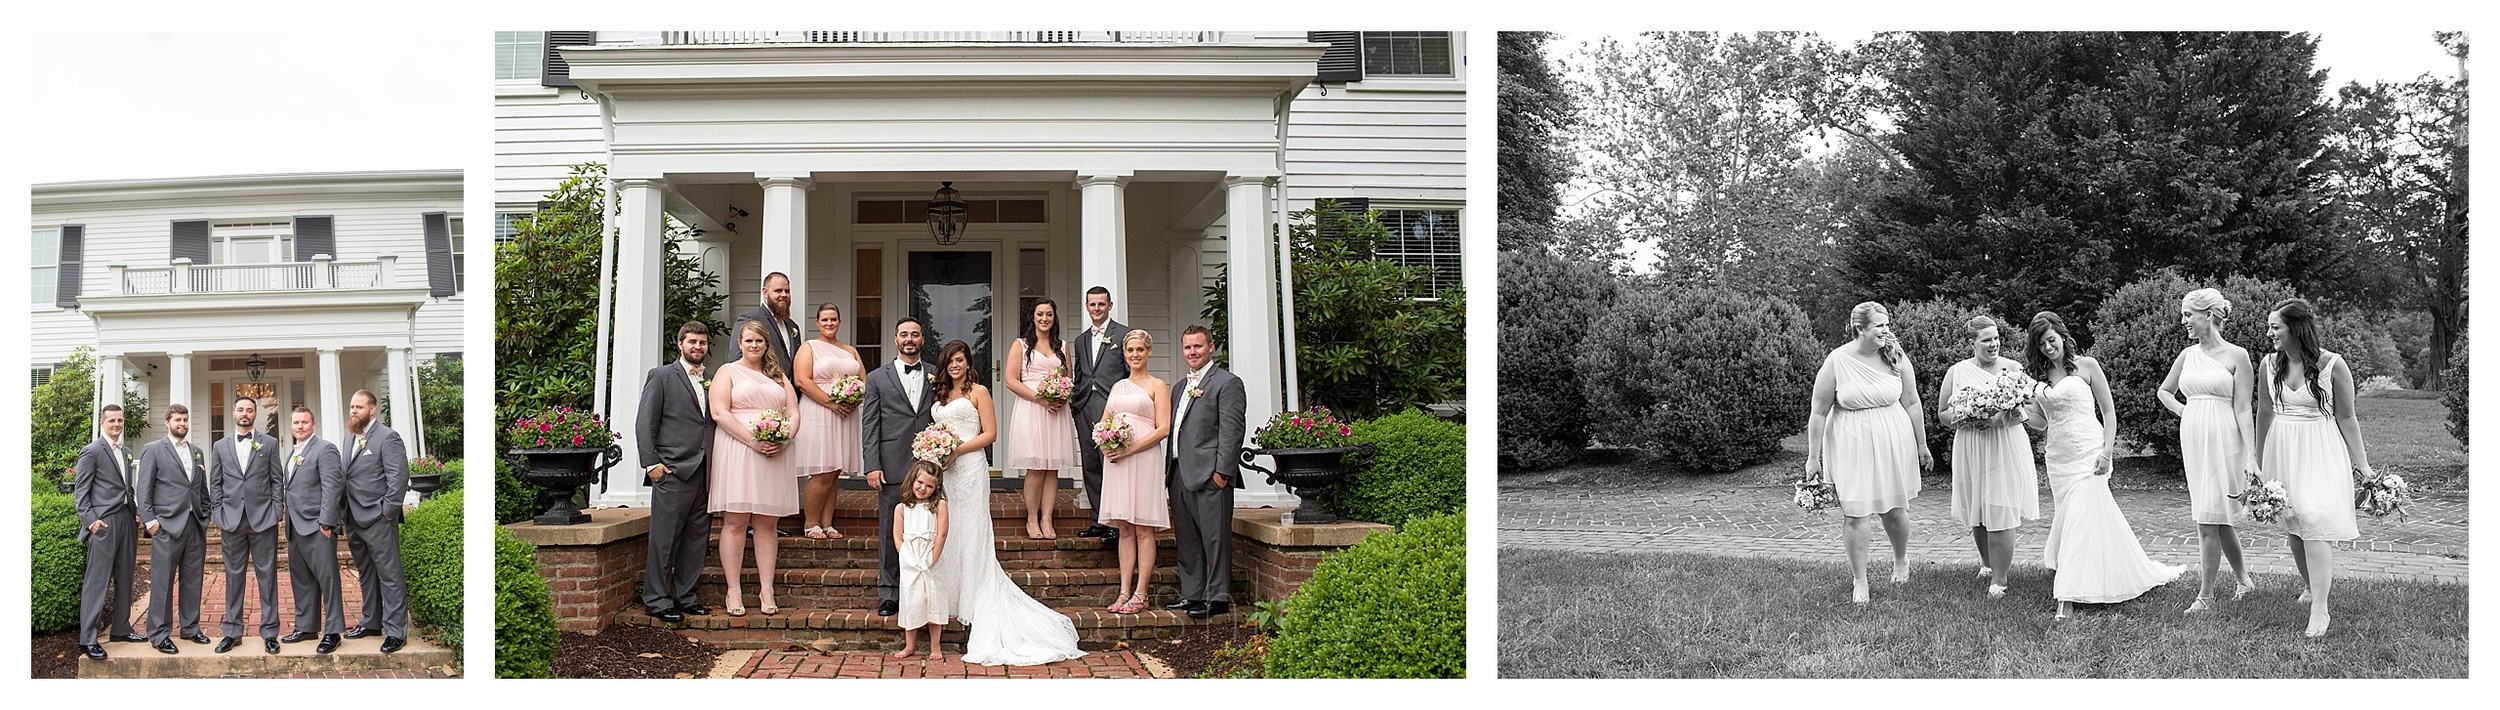 Lynchburg, Virginia Wedding Photographer // Ashley Eiban Photography